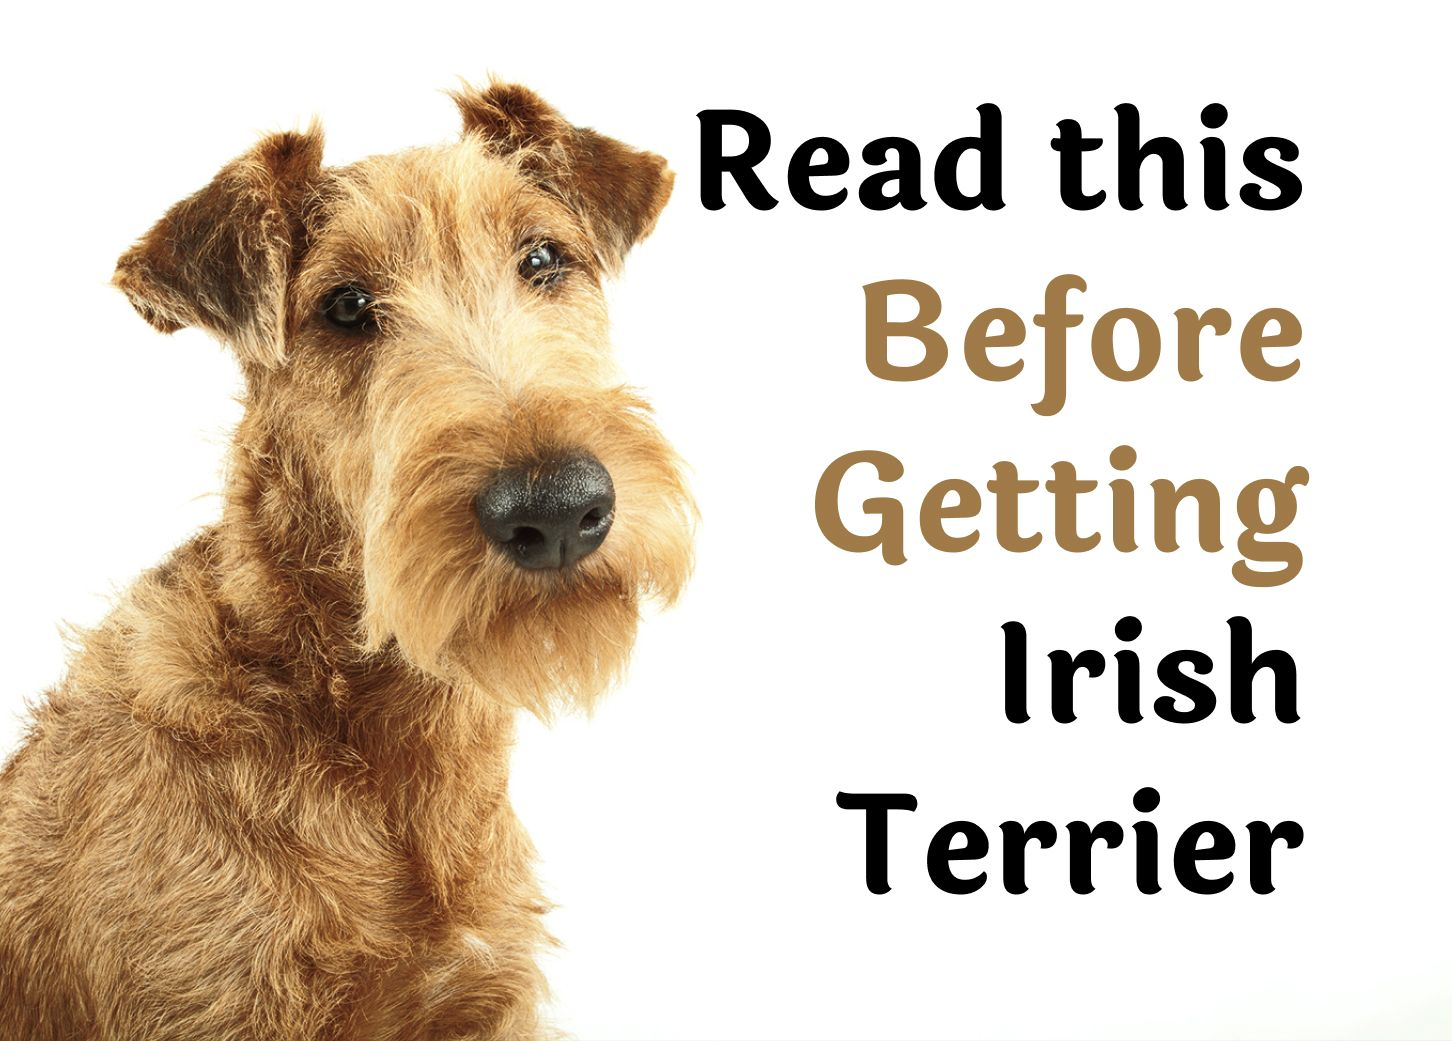 Questions To Ask Before Getting An Irish Terrier